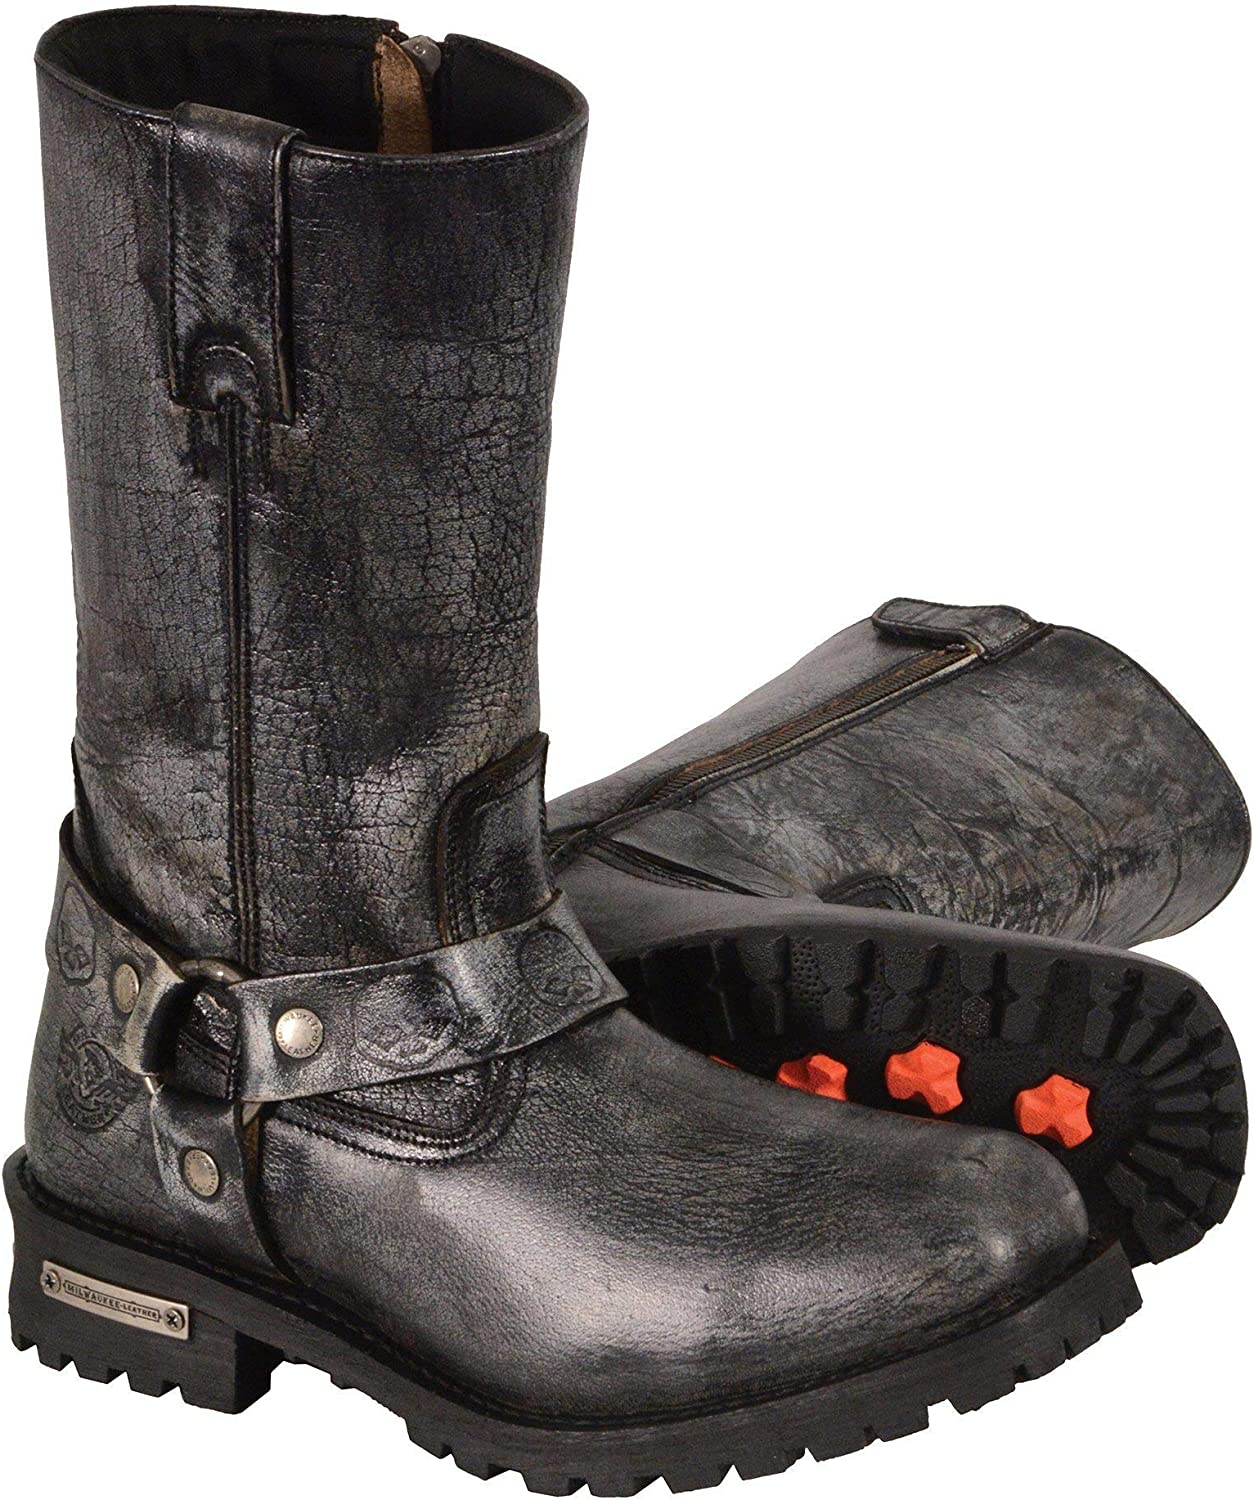 Black, Size 8.5W//9 Milwaukee Leather Mens Waterproof Boots with Gear Shift Protection